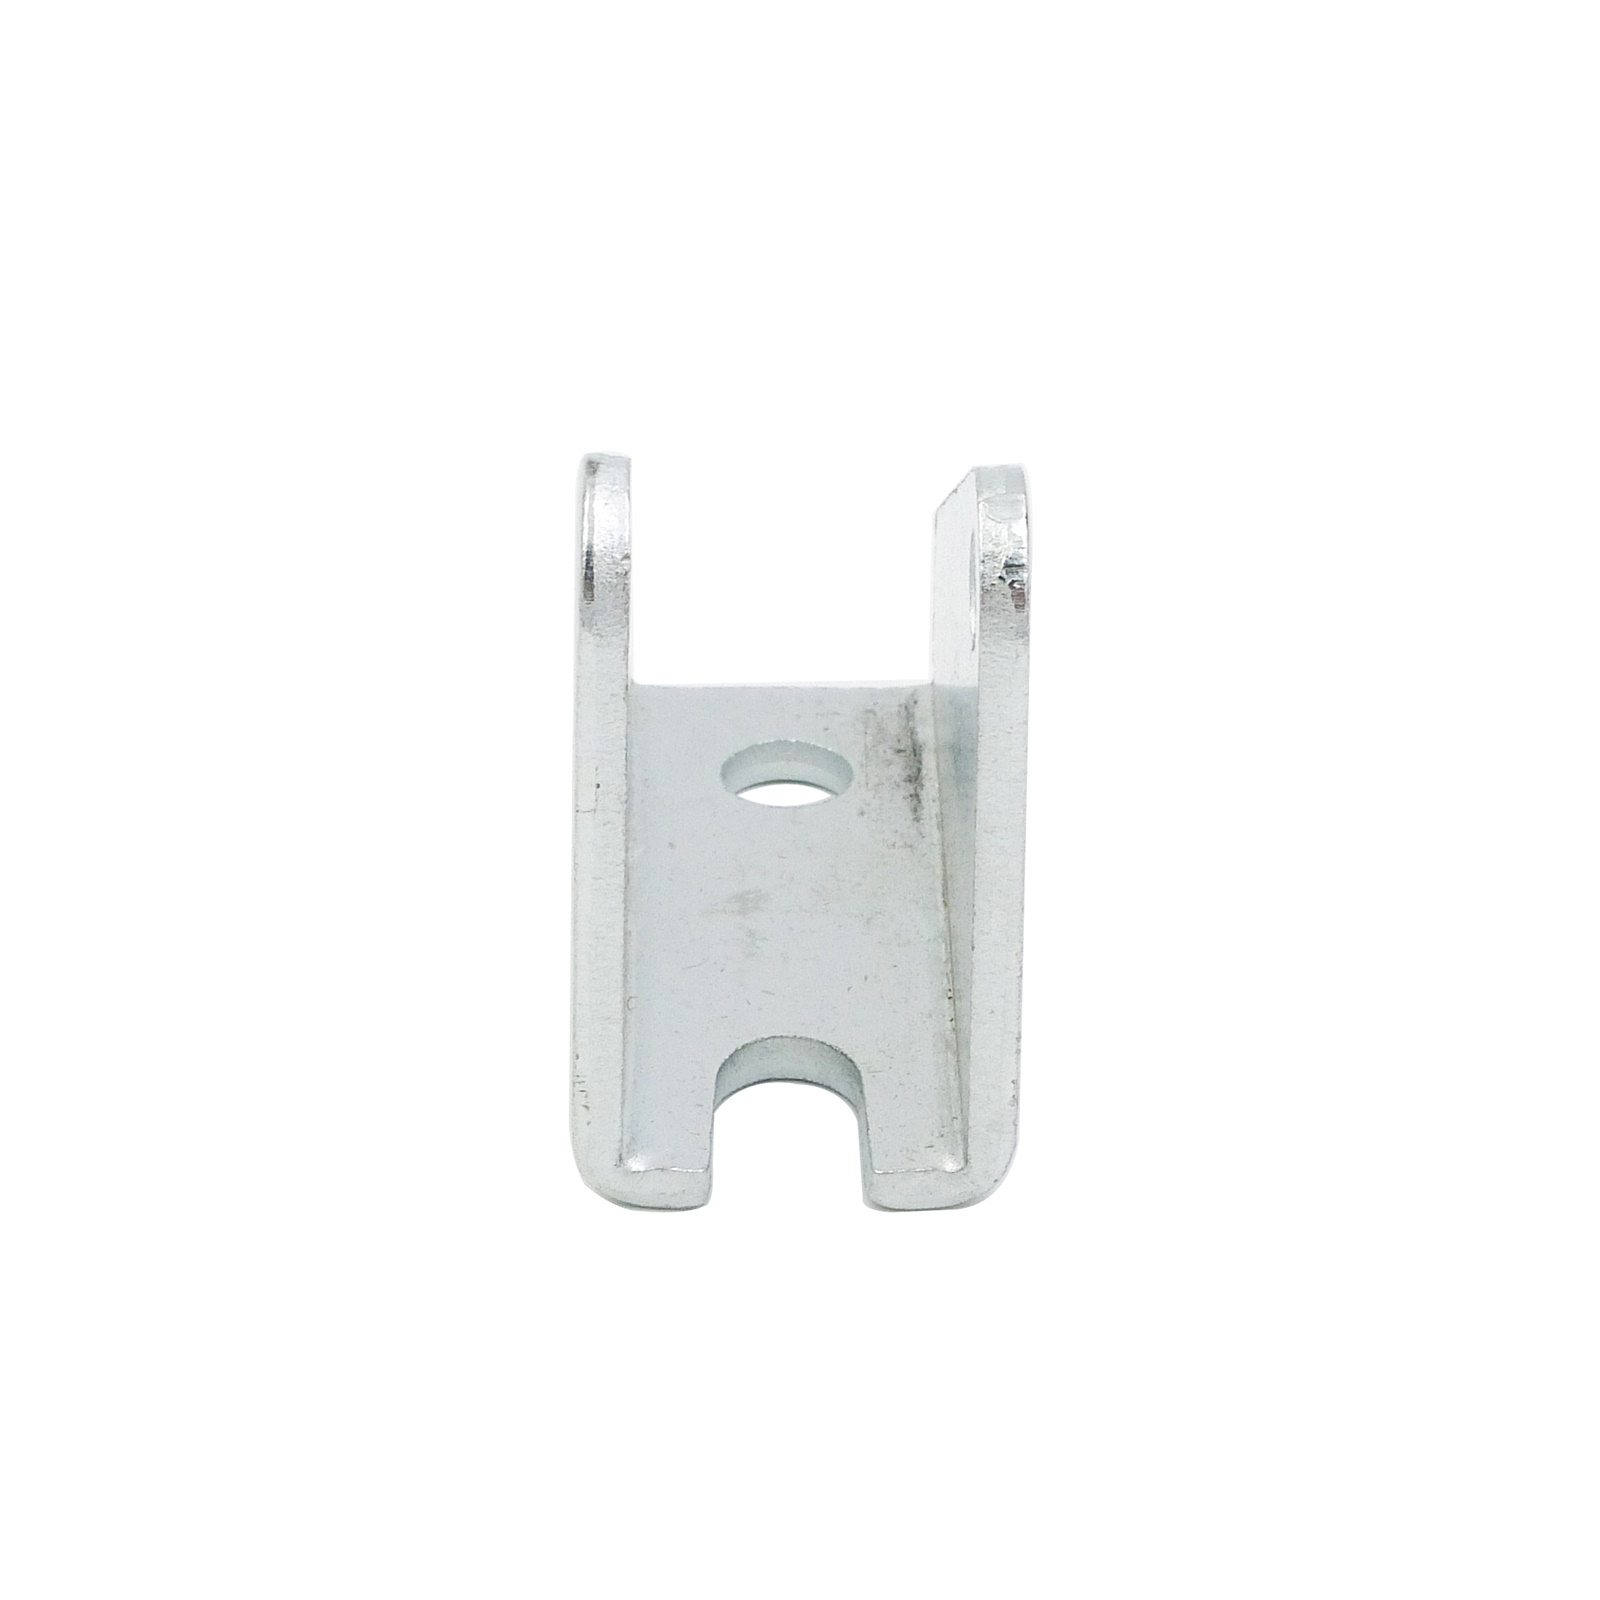 KST-BKT-07 mounting bracket for linear actuator -  (3)